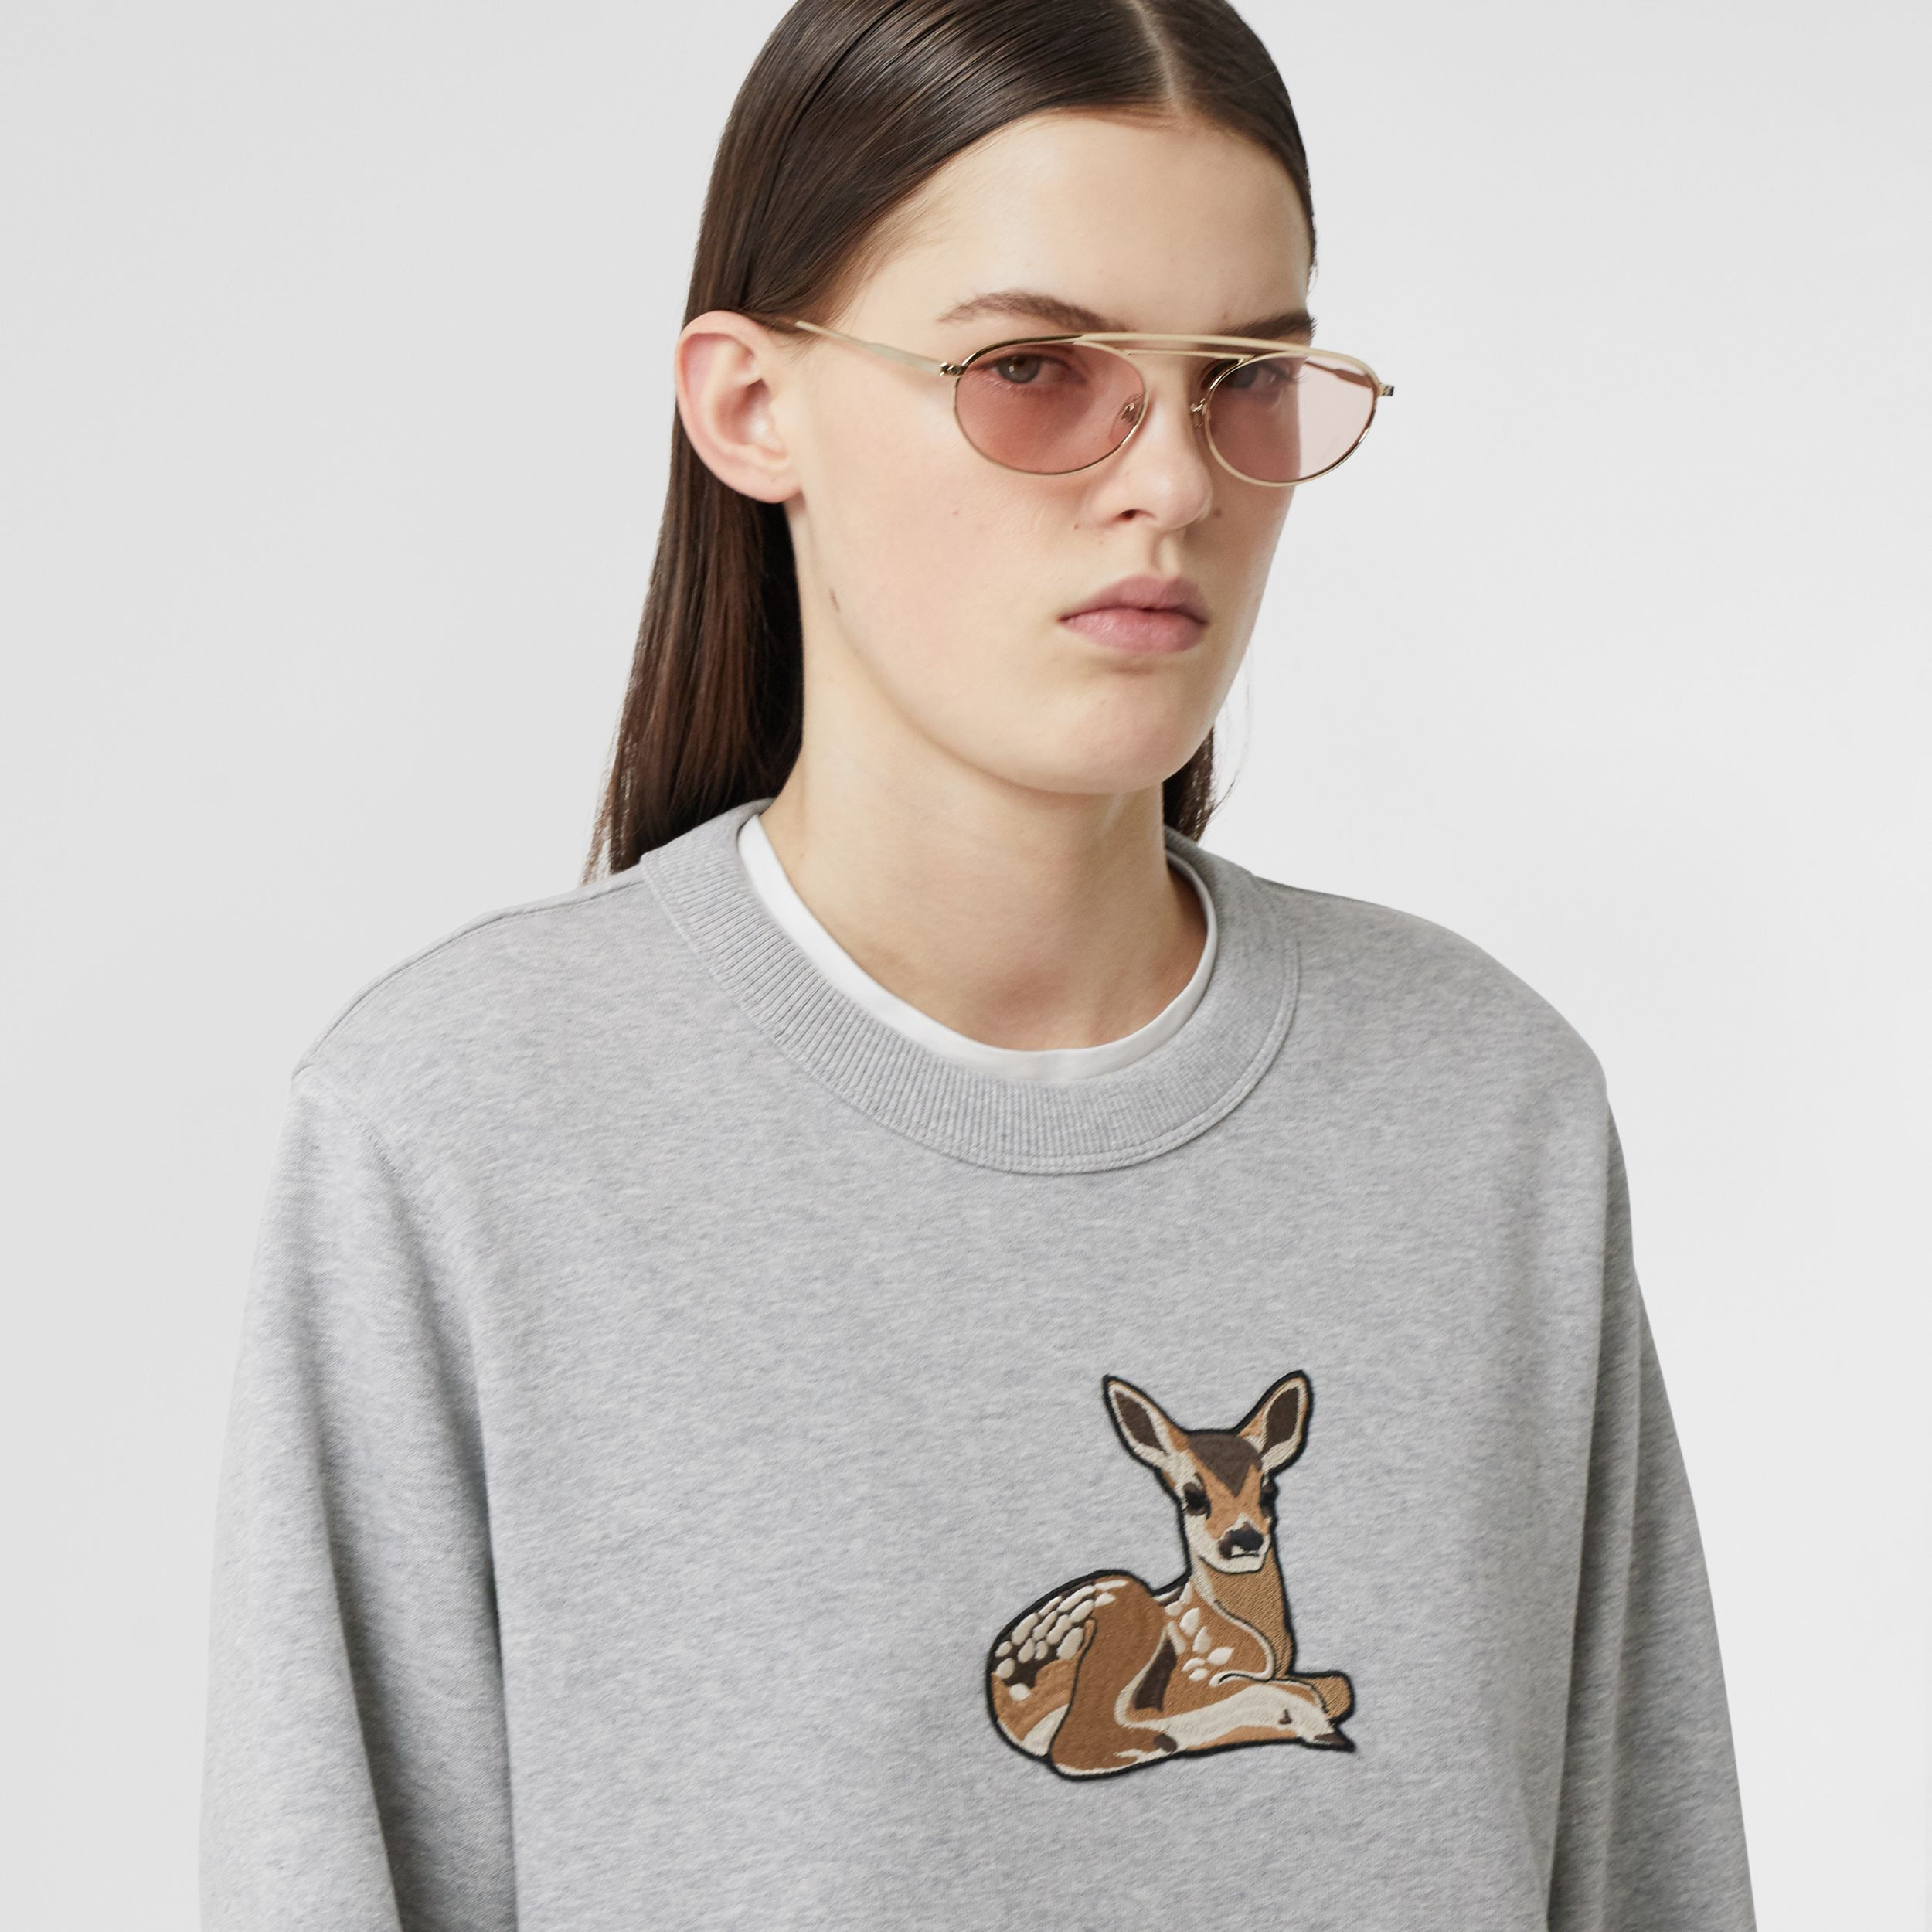 Deer Motif Cotton Oversized Sweatshirt in Pale Grey Melange - Women | Burberry - 2